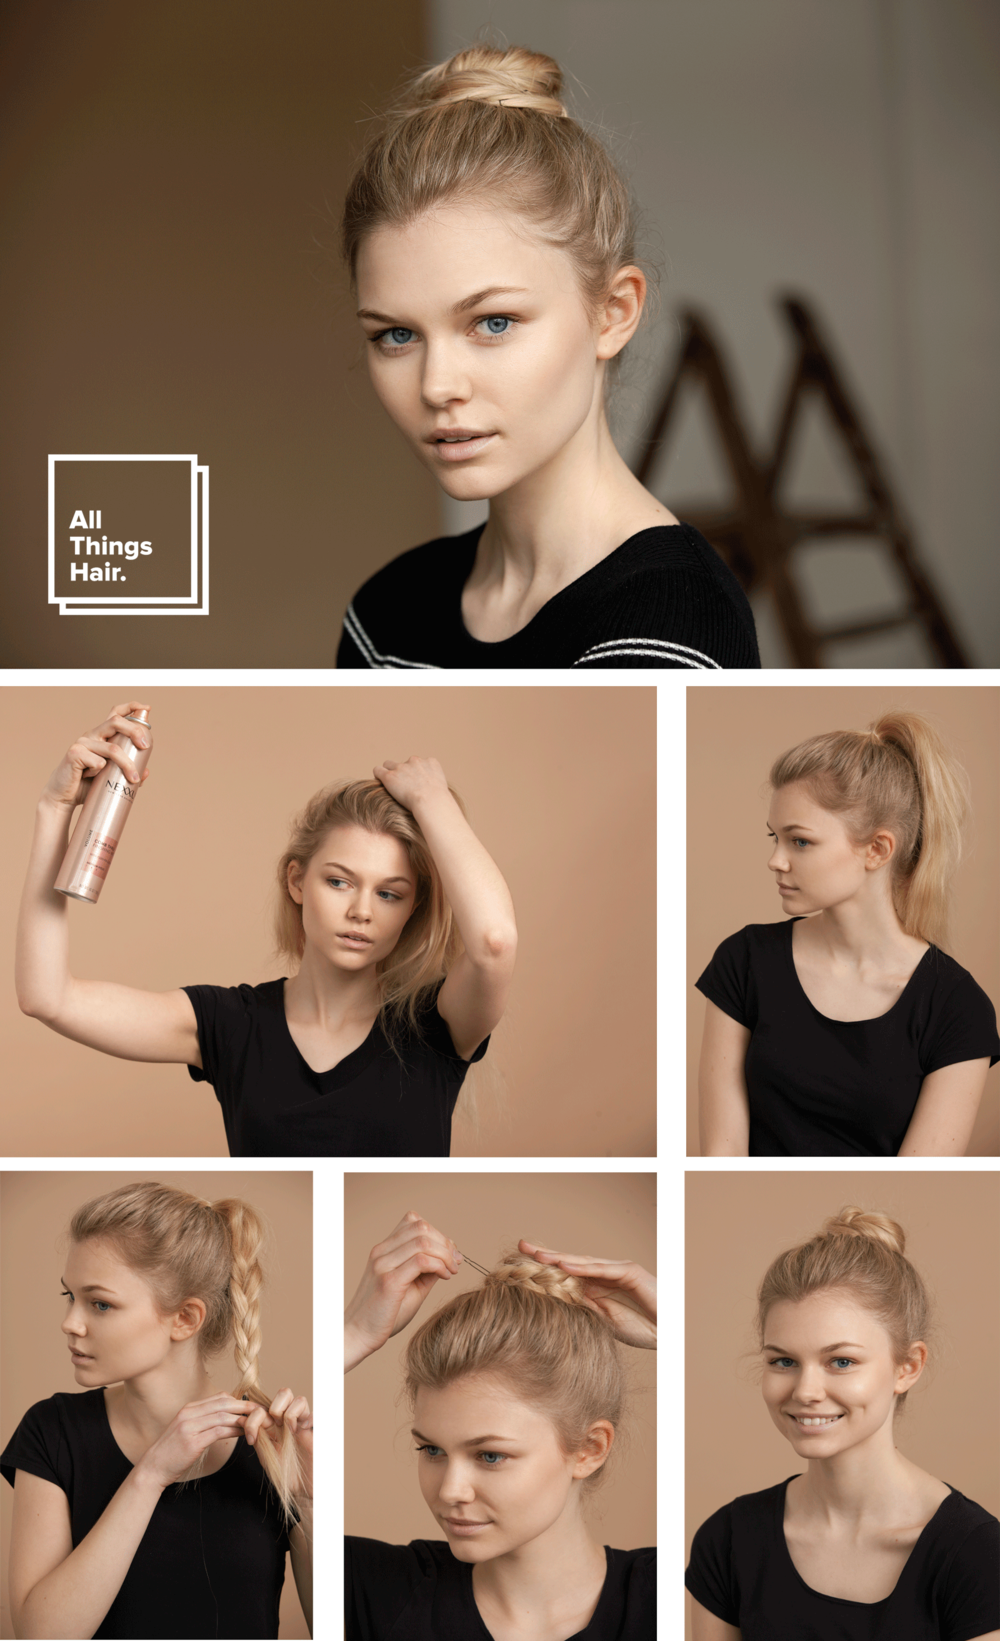 Campaign and Tutorial for All Thing Hair by Unilever in Sao Paulo